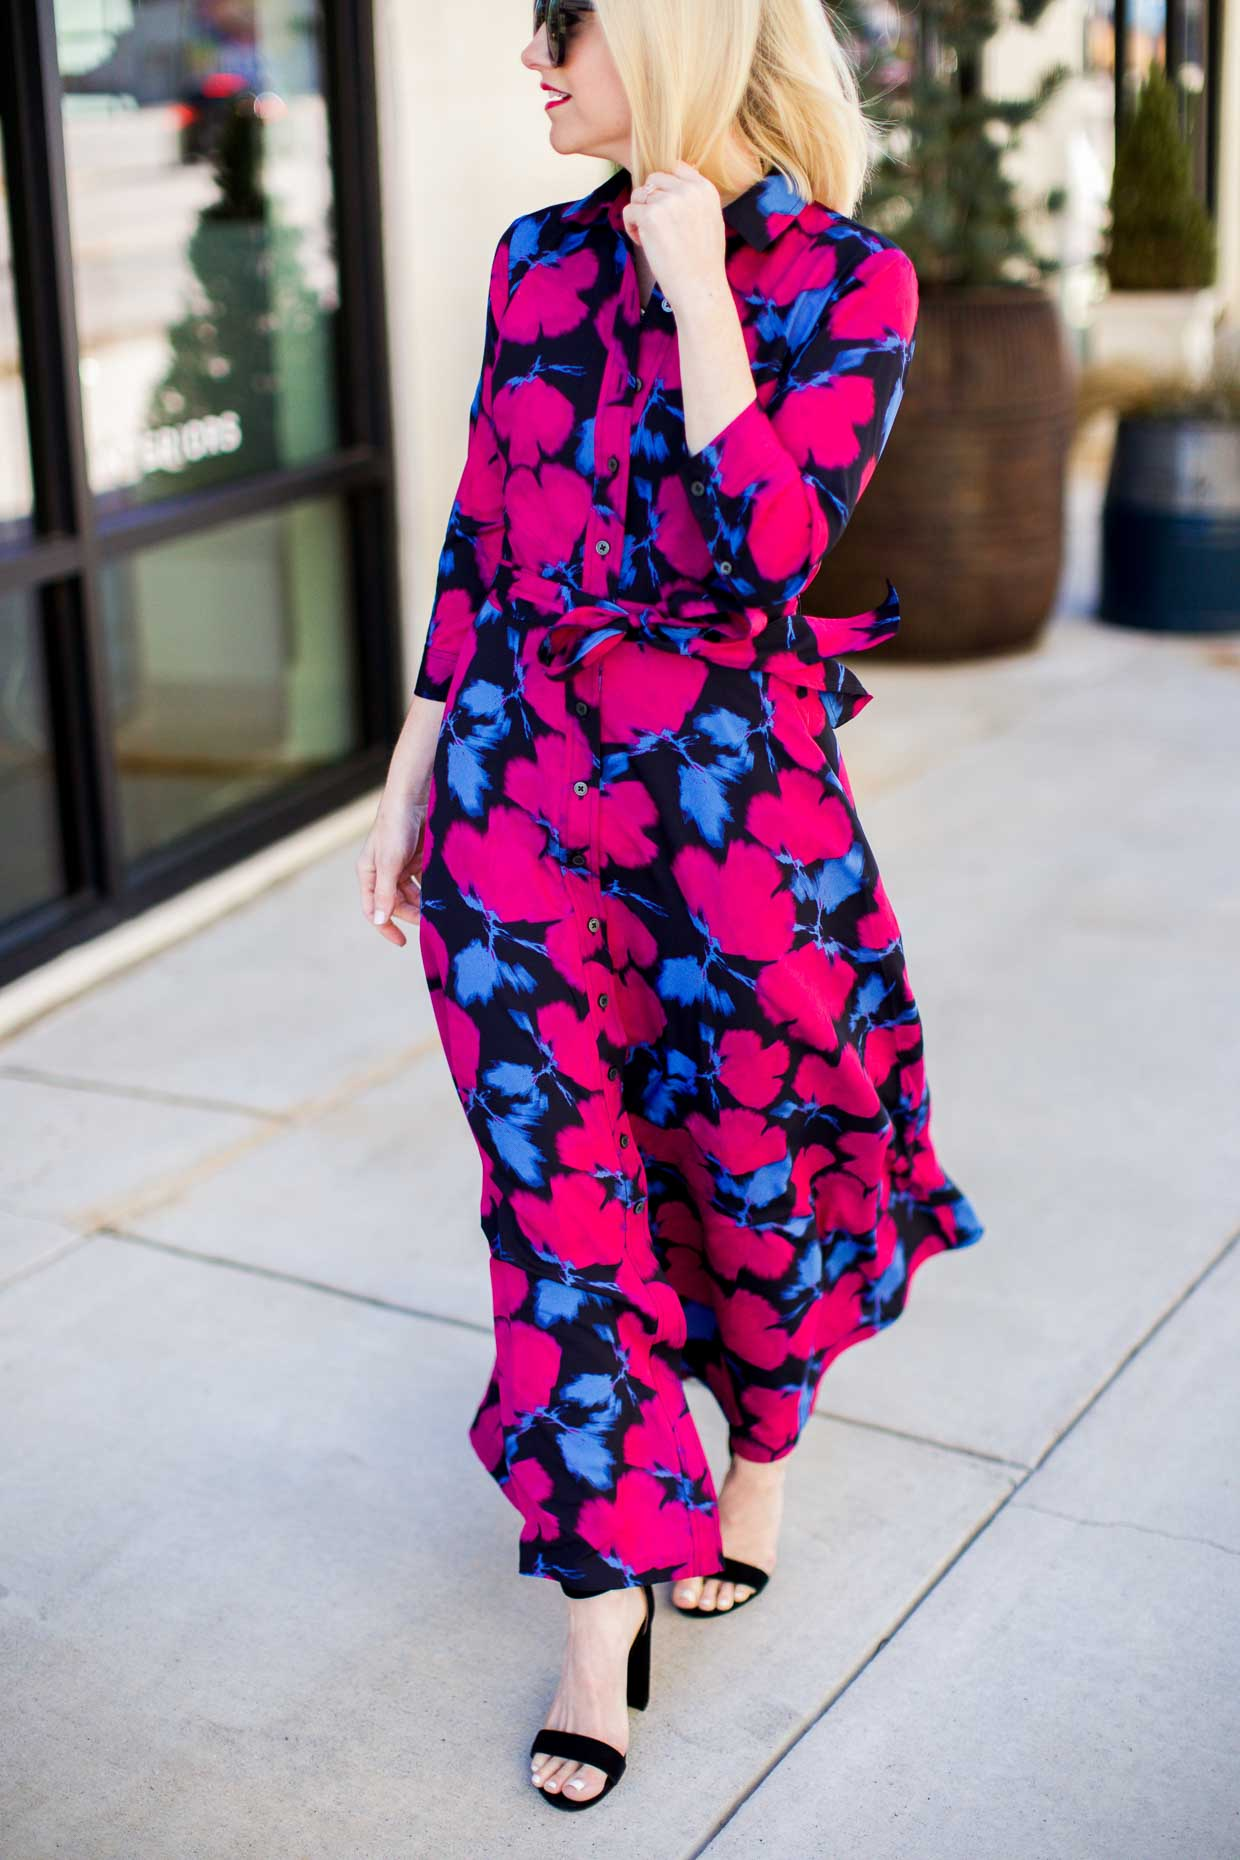 How To Style A Pink Floral Maxi Dress - Poor Little It Girl